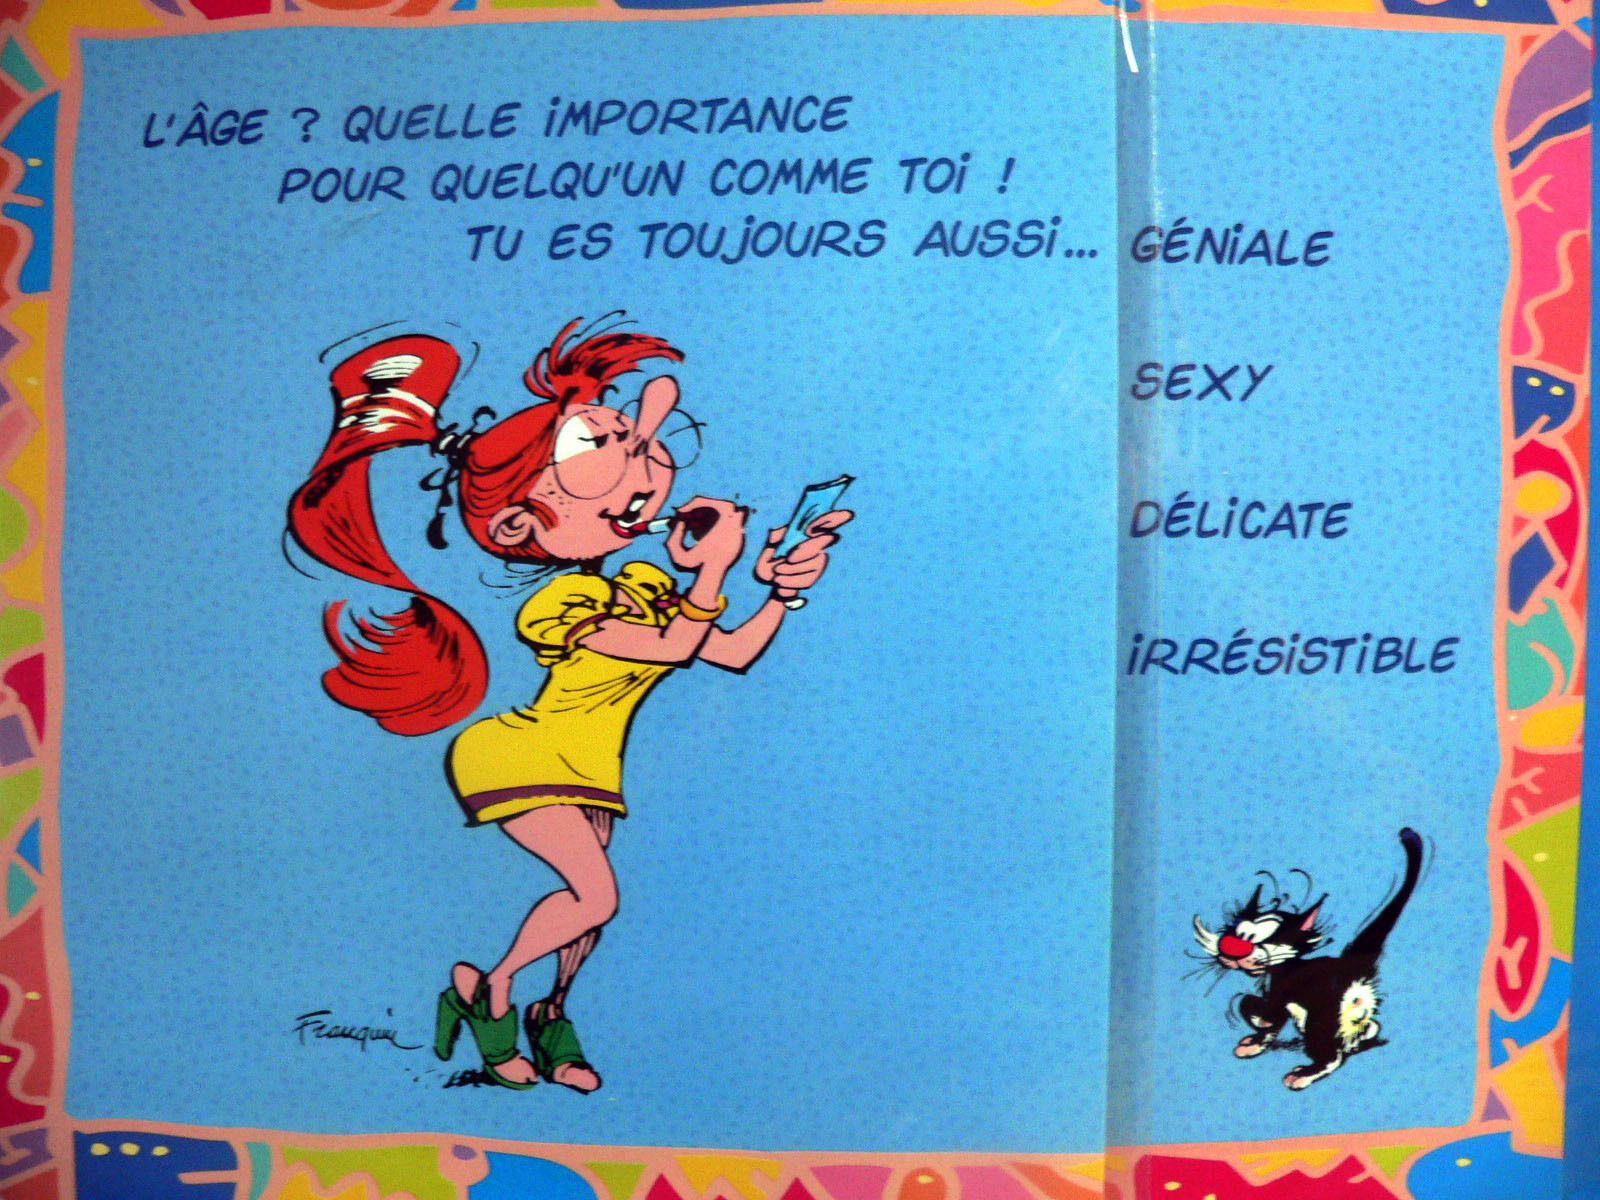 rare grande carte postale d 39 anniversaire humour de gaston lagaffe rabat et env eur 5 90. Black Bedroom Furniture Sets. Home Design Ideas